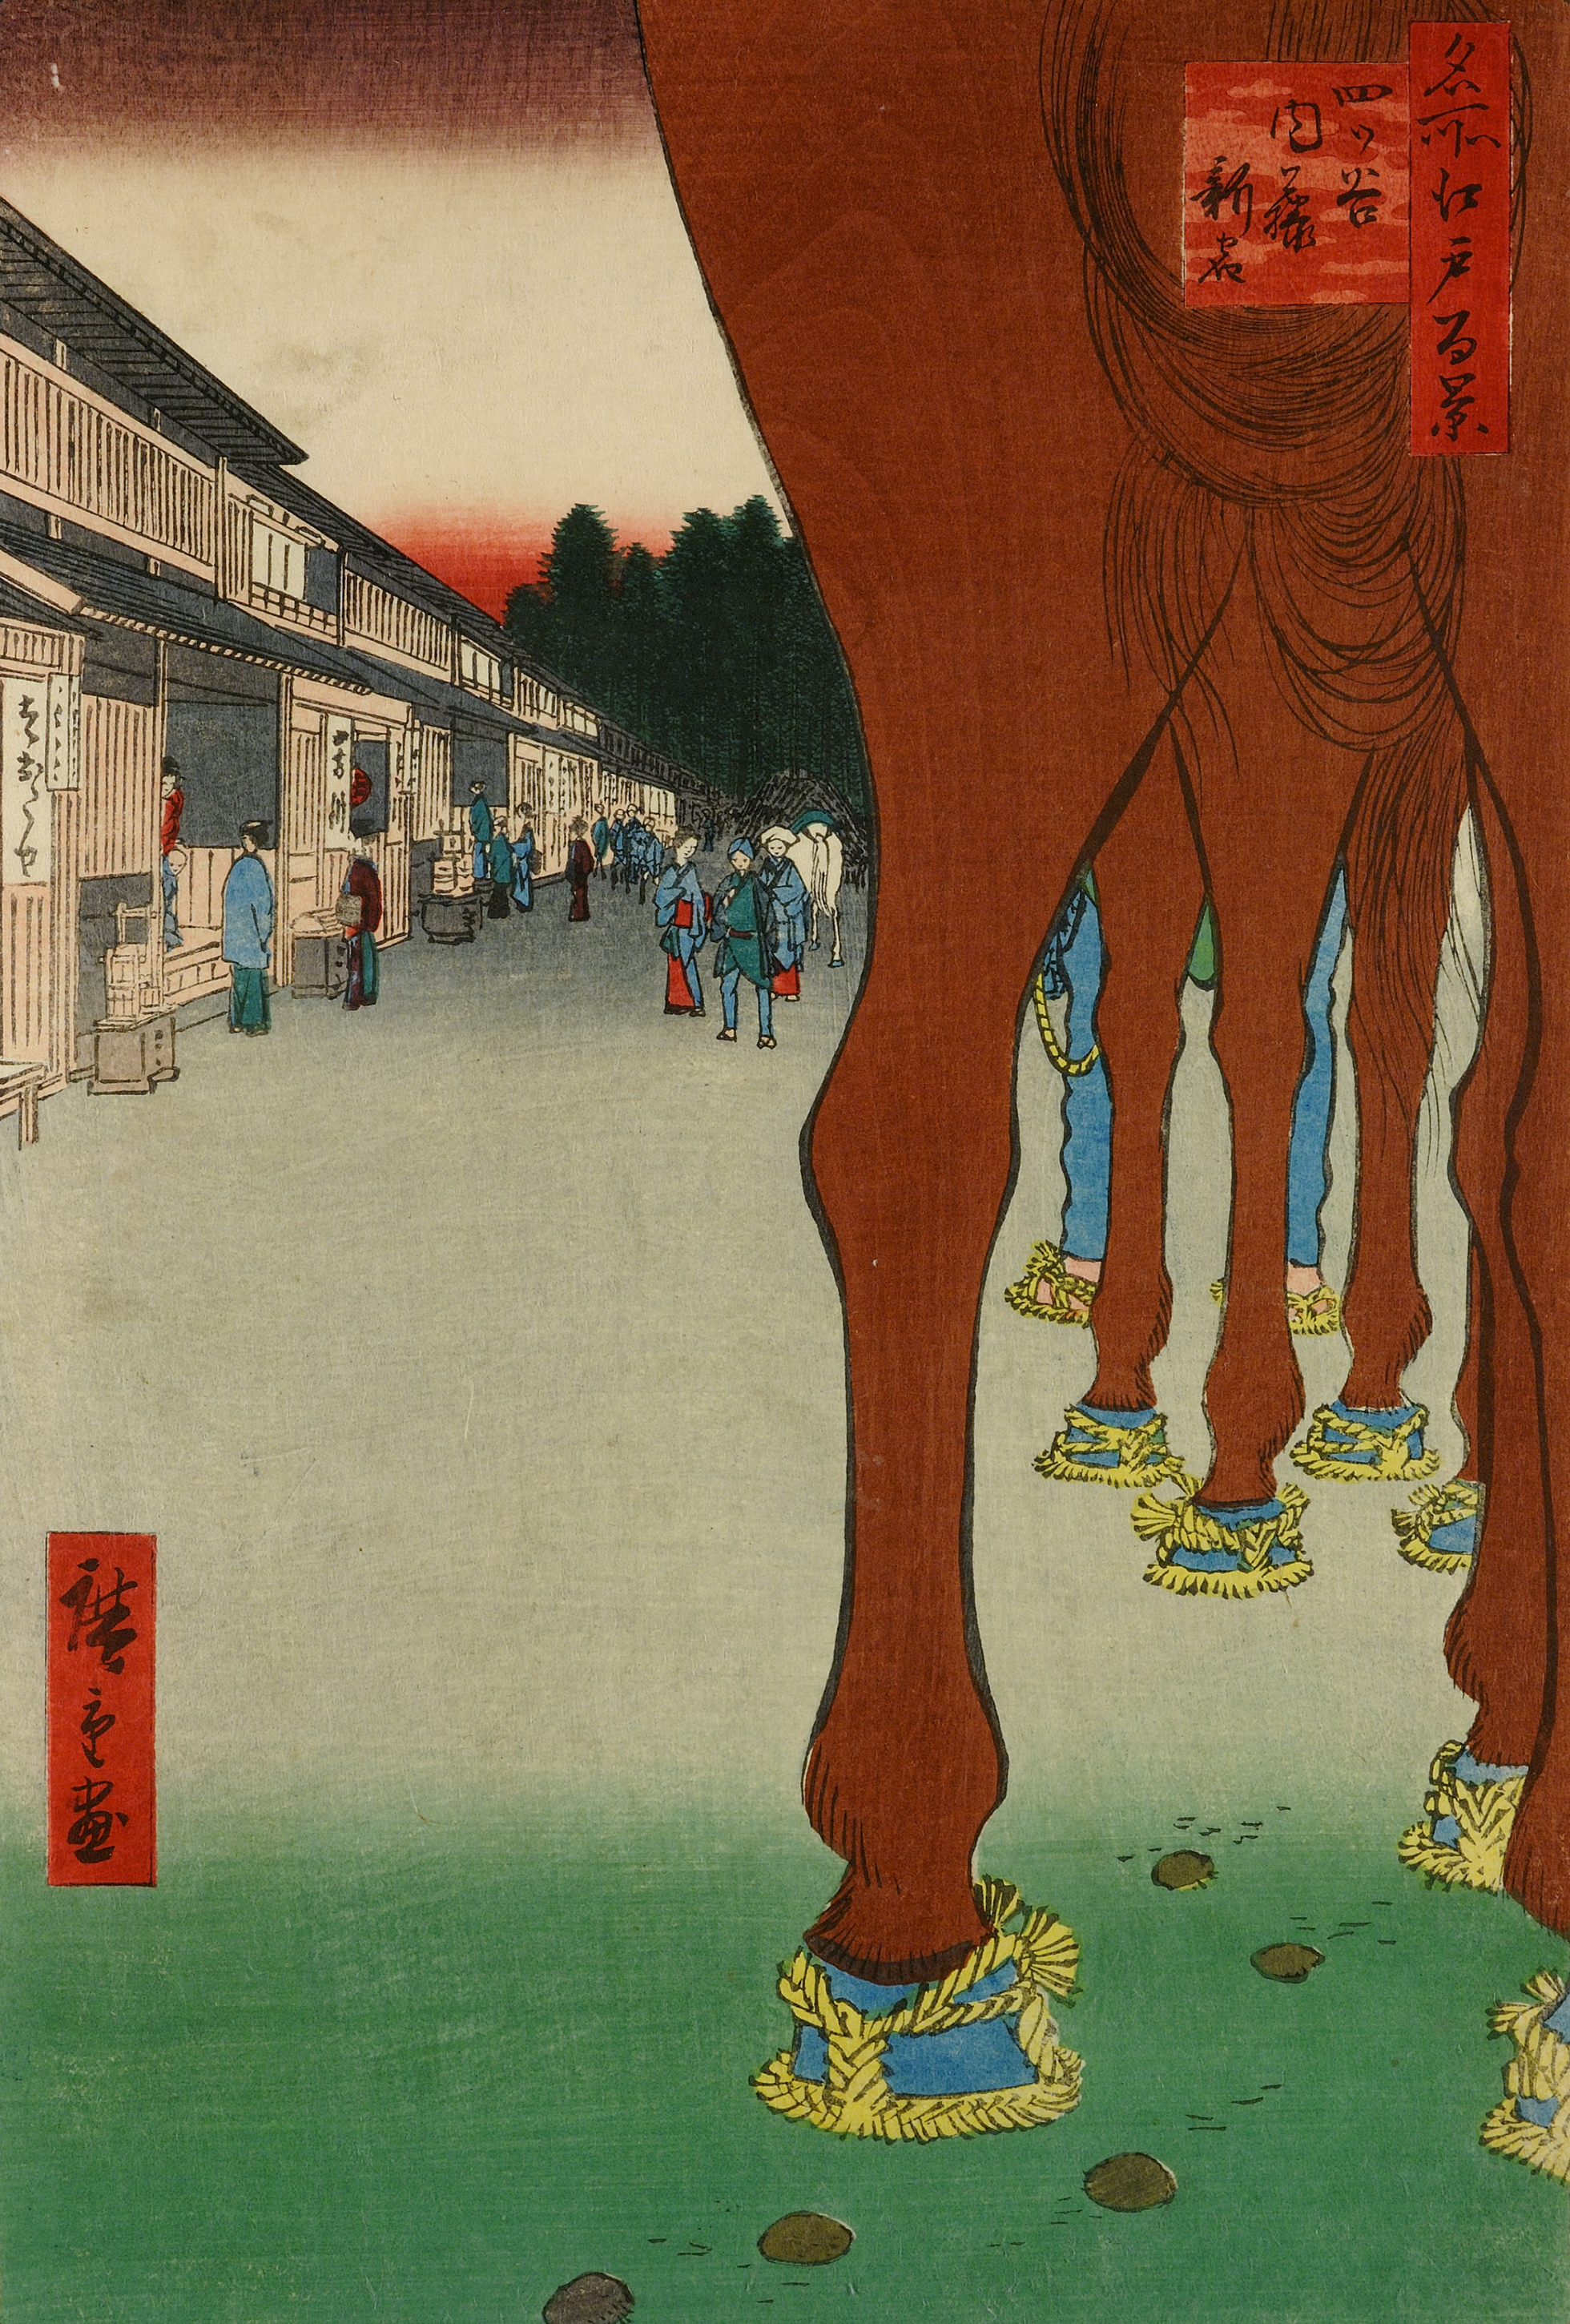 A colour woodblock print showing horse's legs from a low angle, with people in the background walking along a row of buildings on the Kōshū Kaidō highway.